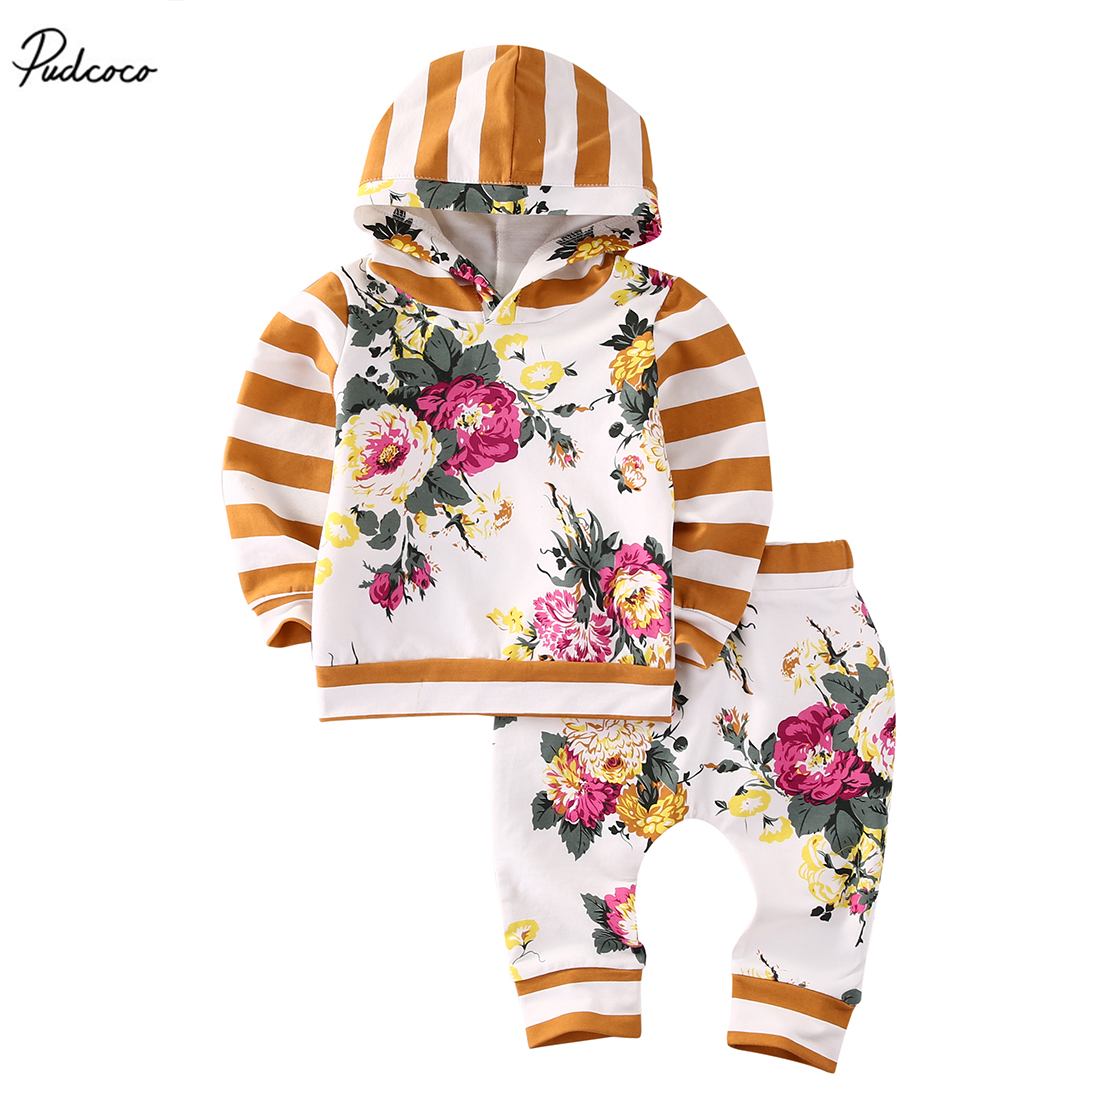 Pudcoco 2pcs Kids Baby Girls New 2017 Striped Long Sleeve Hooded Sweatshirt Tops Floral Long Pants Outfits Set